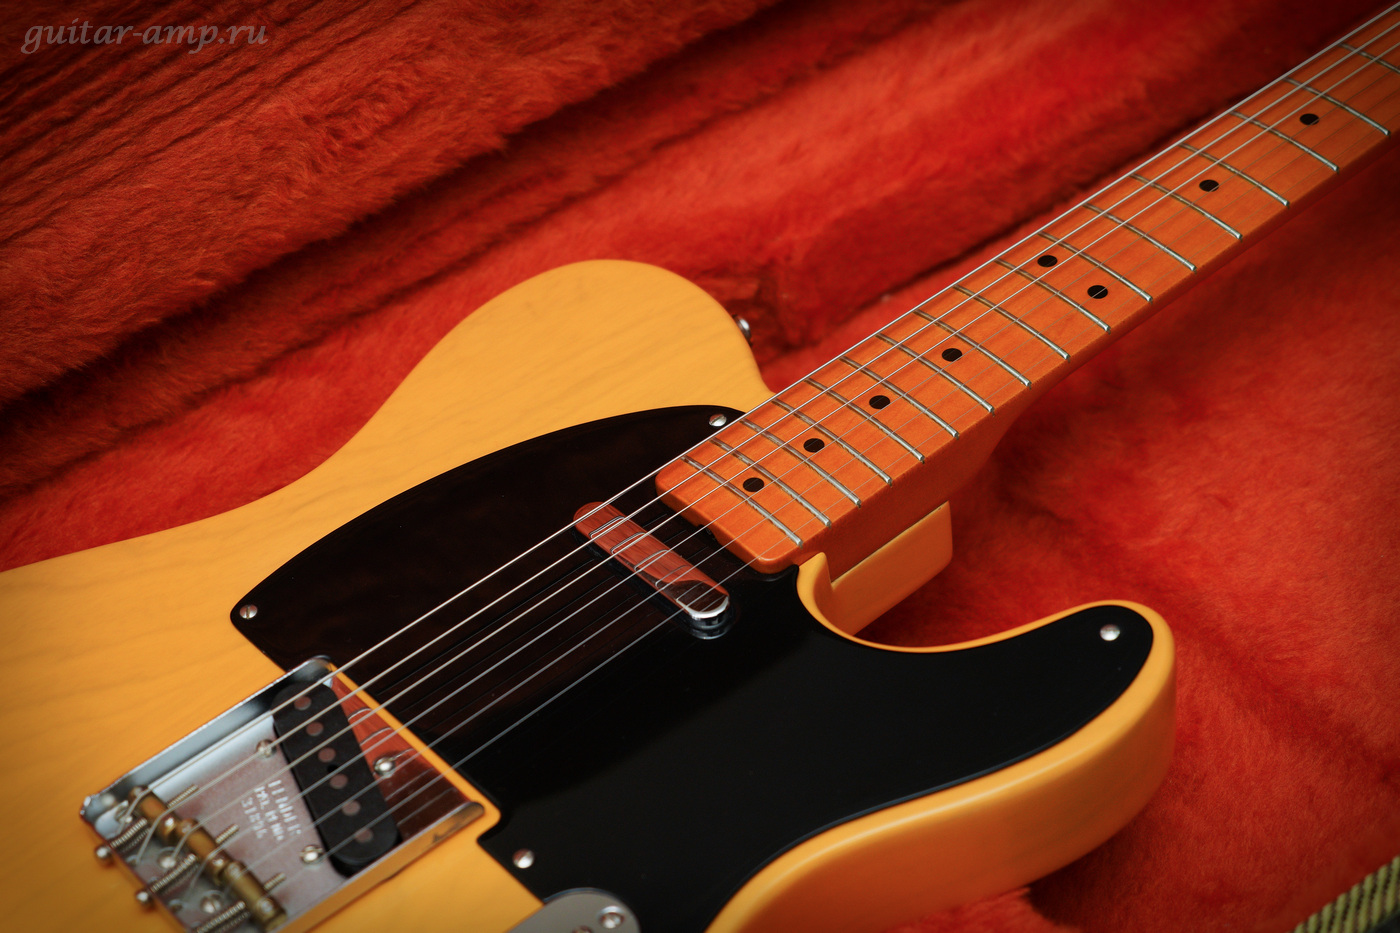 Fender American Vintage Telecaster 1952 Reissue Butterscotch Blonde All Original 1998 17_garx1400.jpg